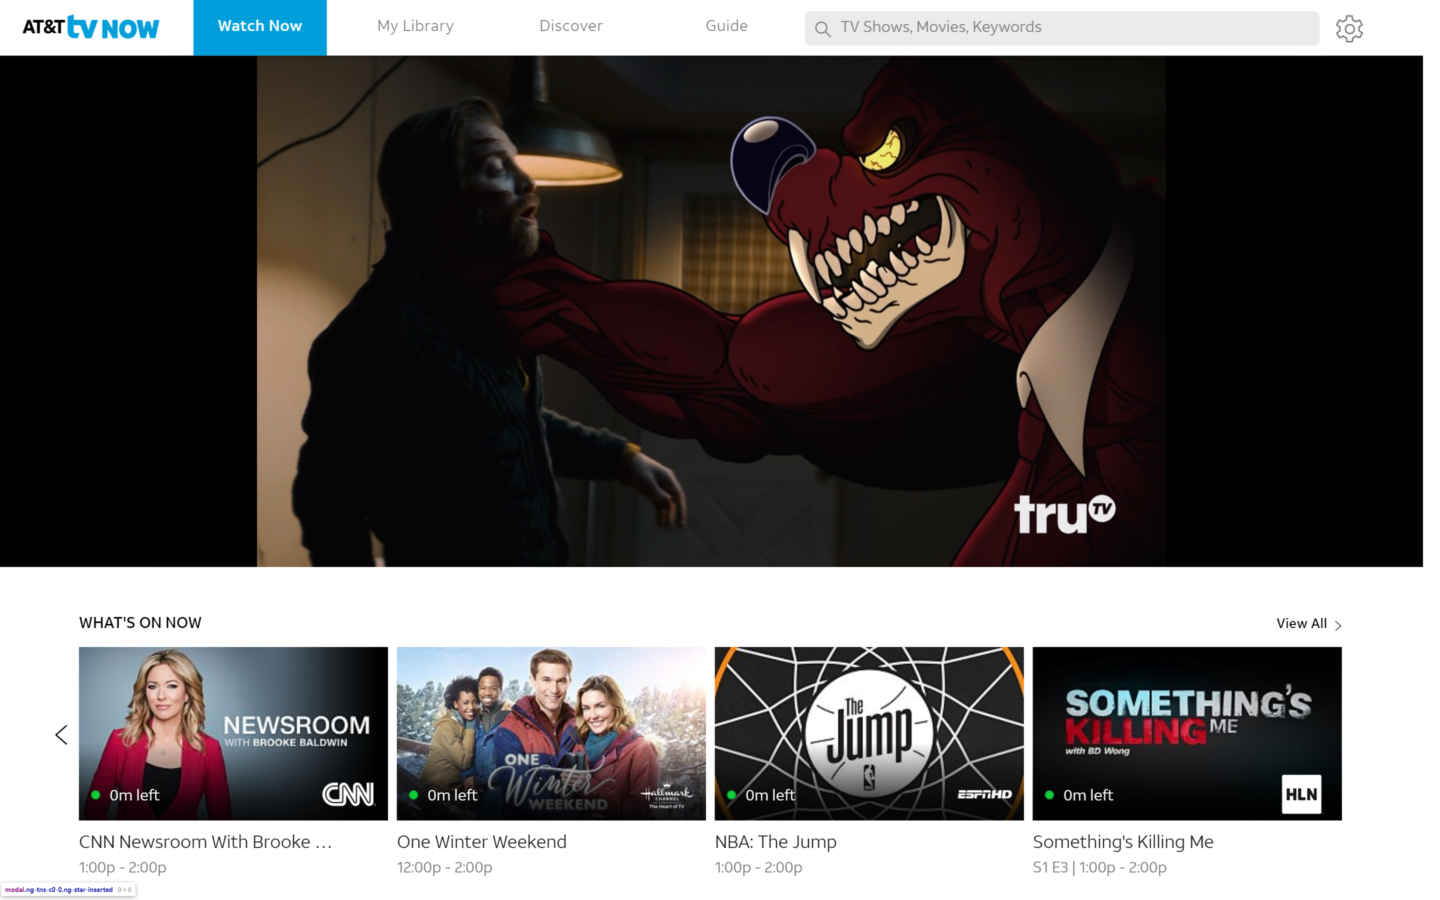 ATT TV NOW homepage